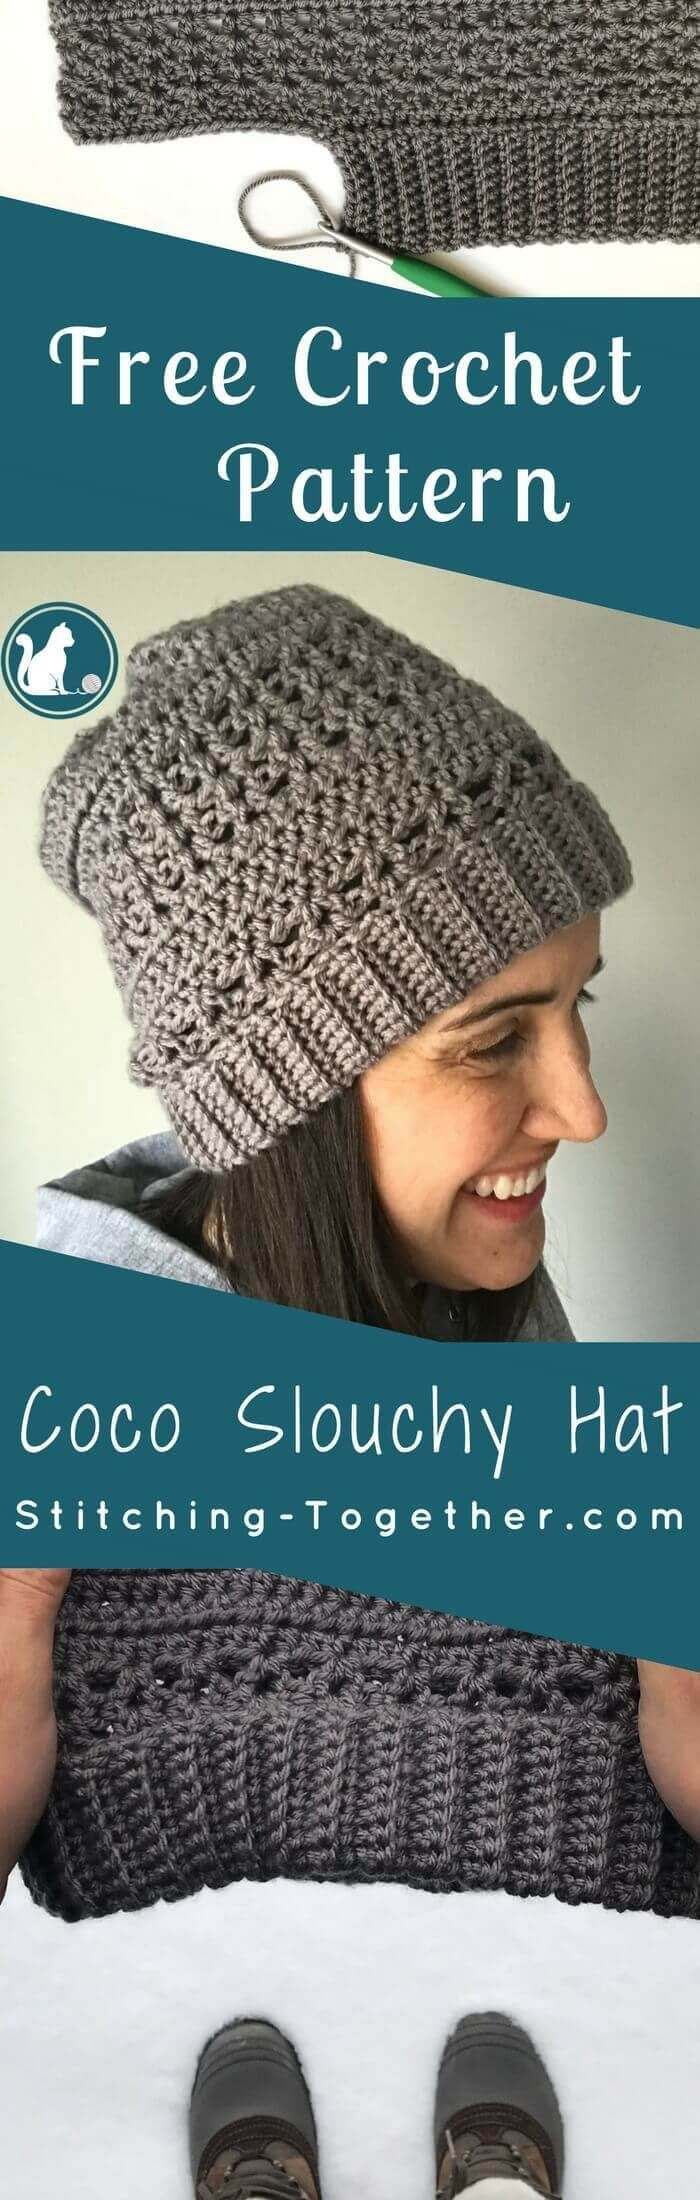 Coco Crochet Slouchy Hat | CRAFTS - Crochet & Knitting both Paid ...